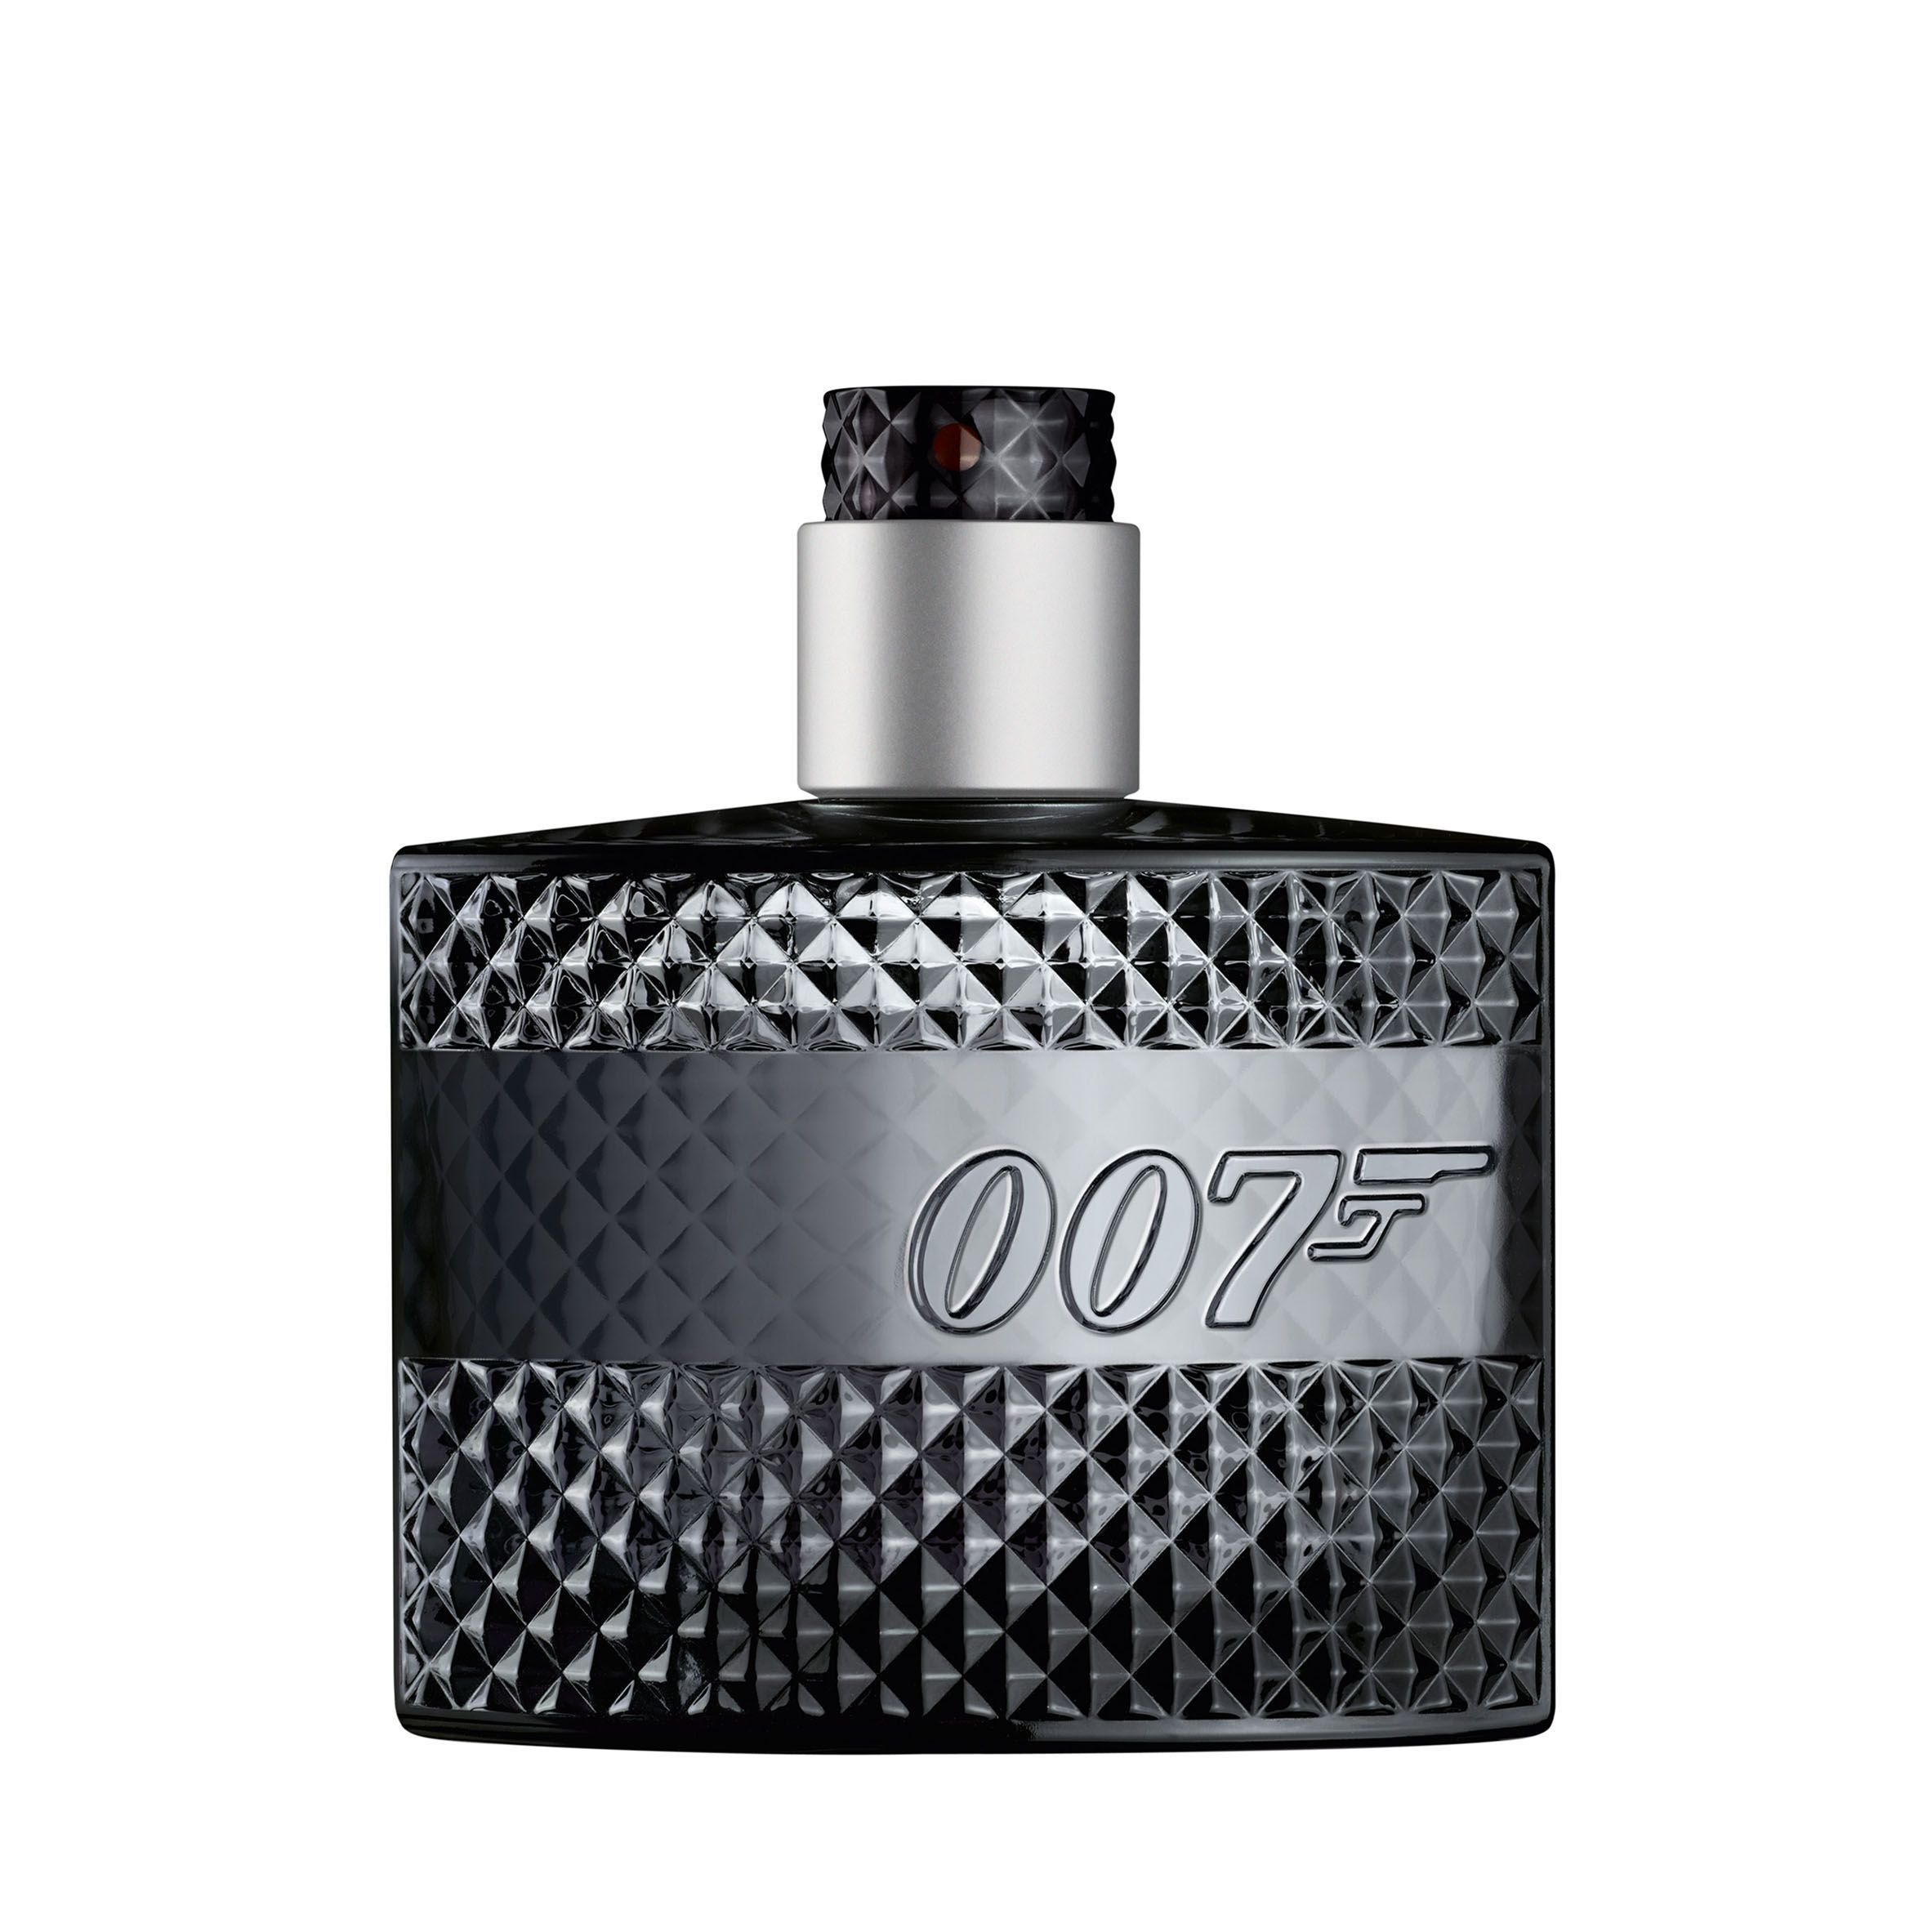 Compare retail prices of 007 James Bond 007 Eau de Toilette 50ml to get the best deal online